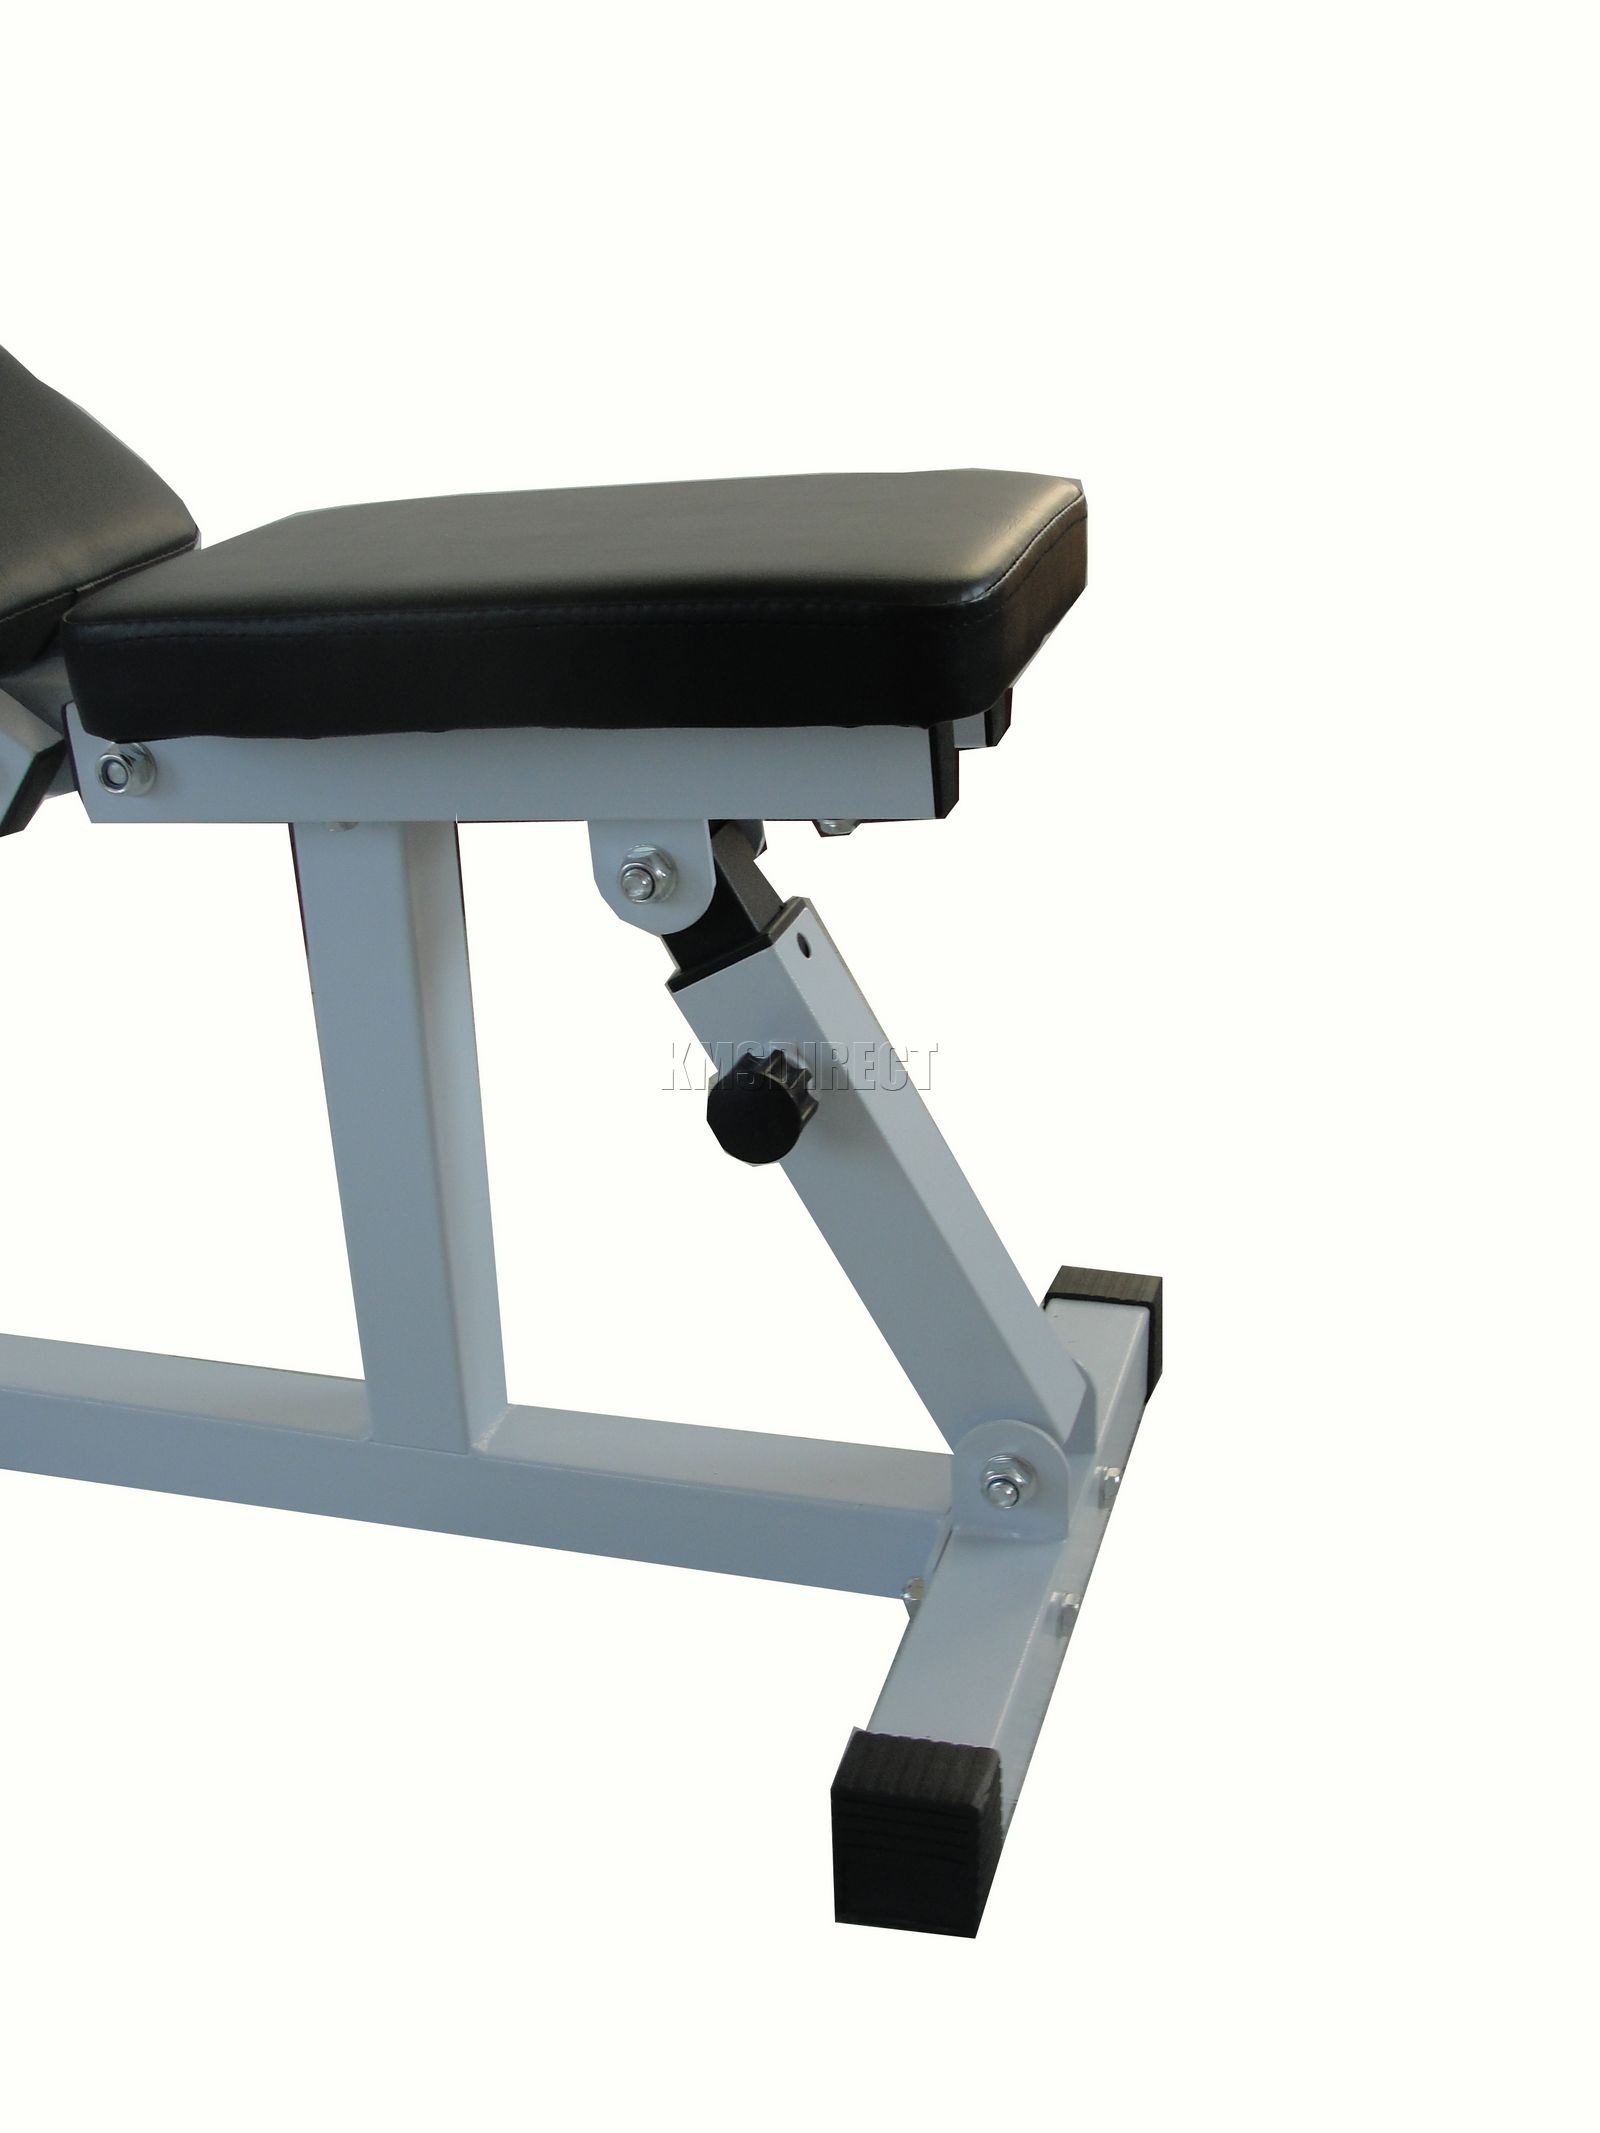 Workout Benches for Sale | Craigslist Weight Bench | Weight Benches on Sale